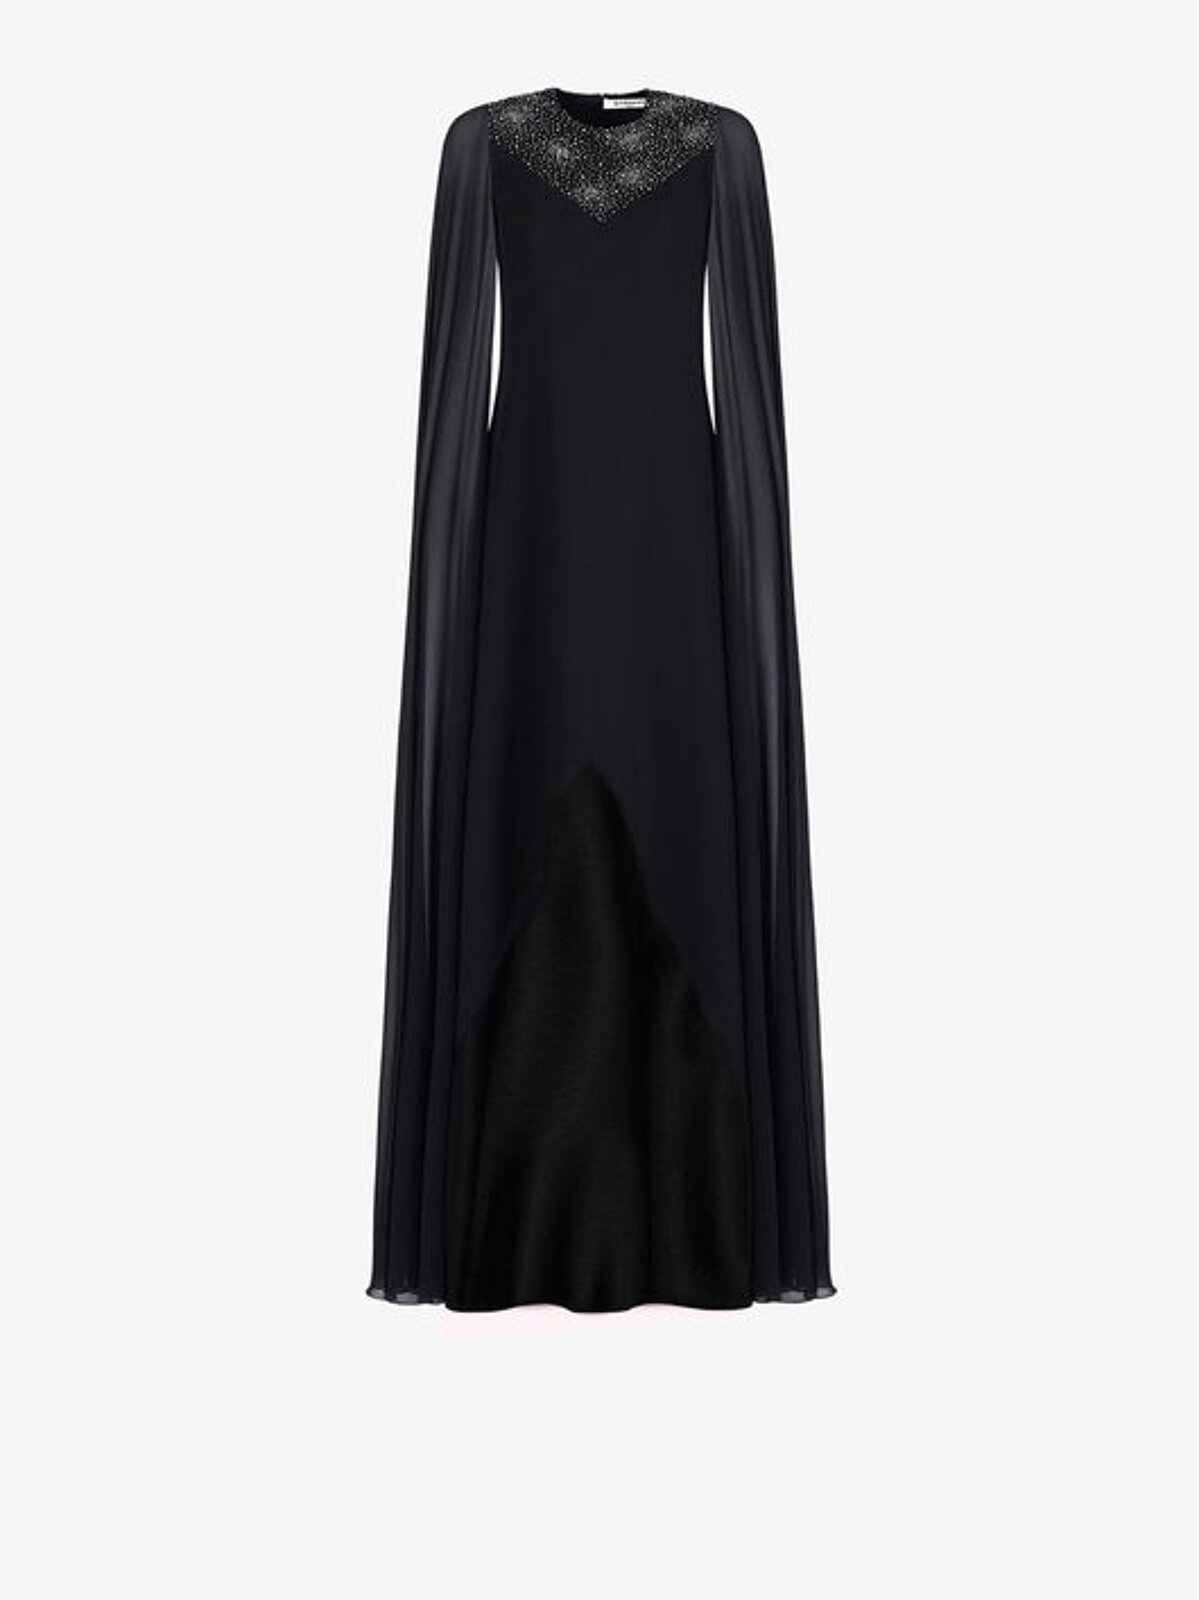 Dress With Cape Sleeves And Front - Givenchy